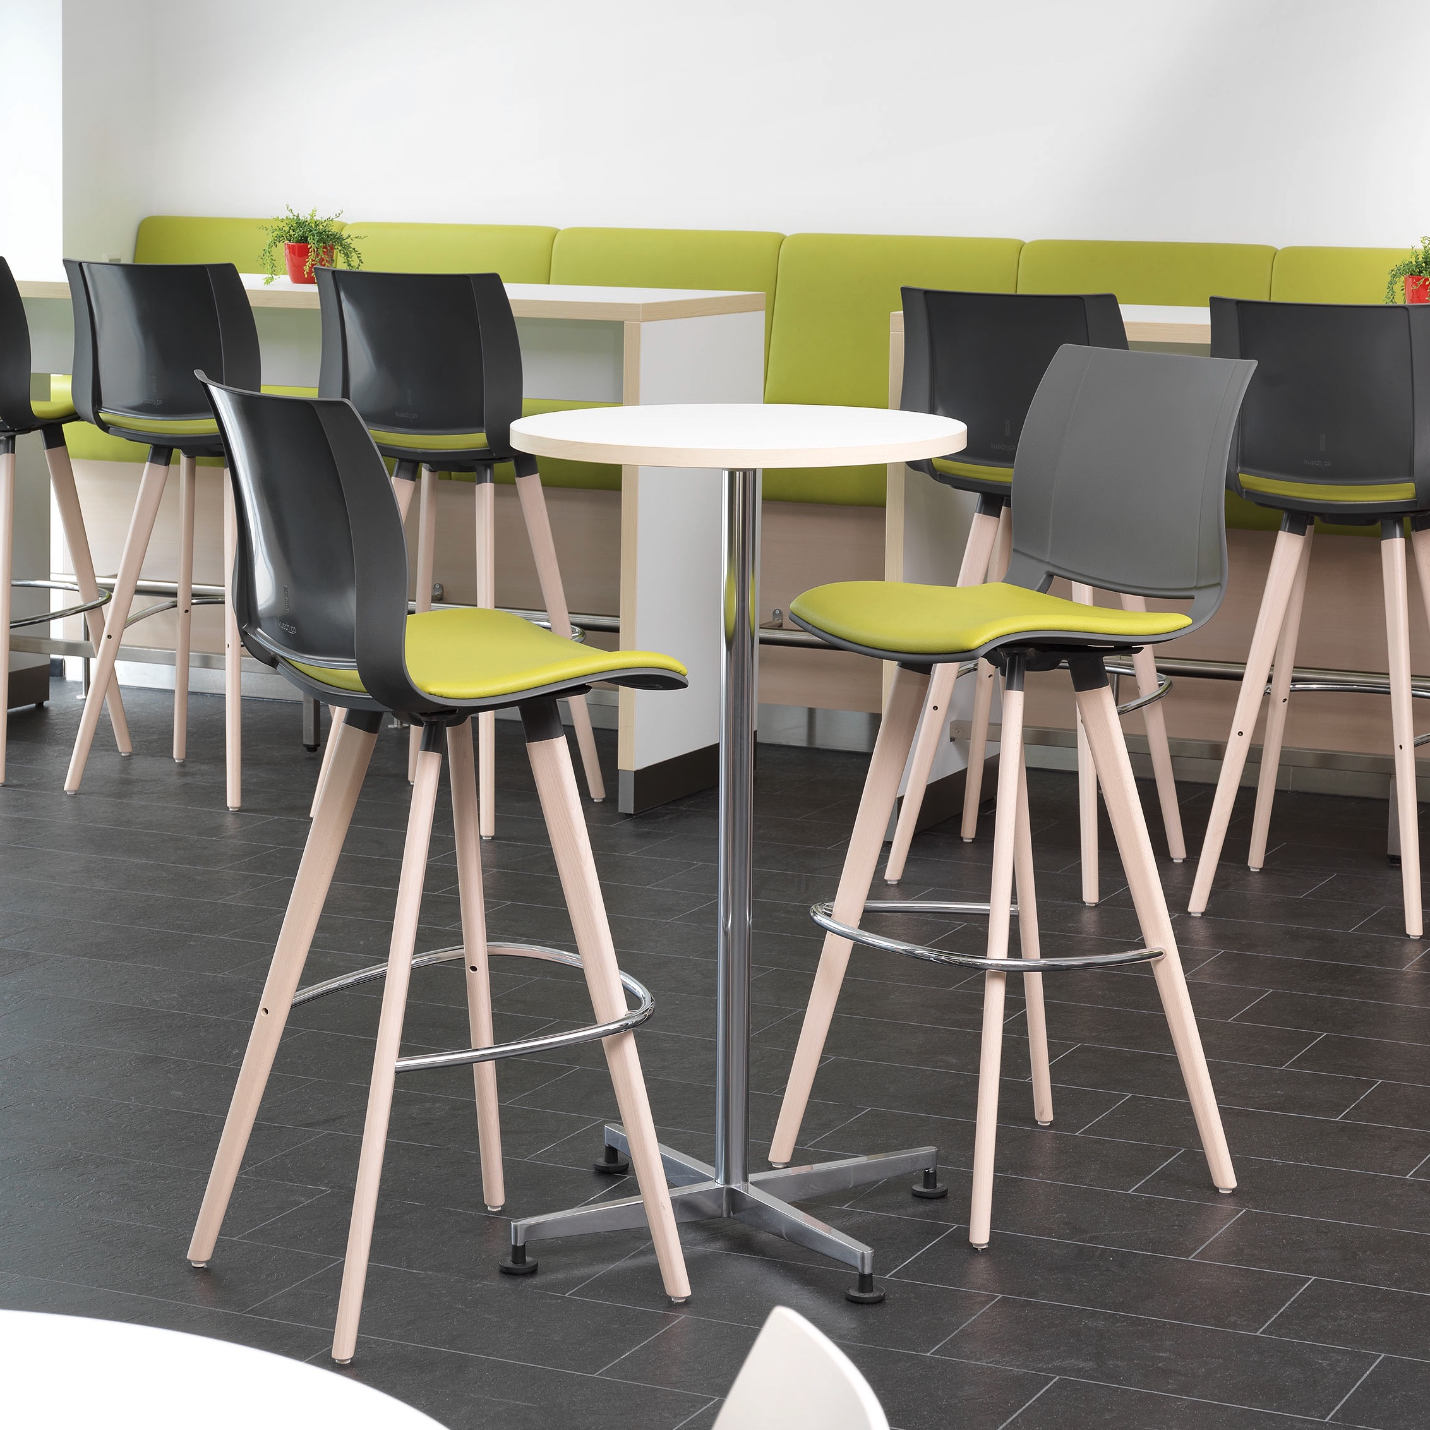 uni_verso Barstool 2080 (Seating)